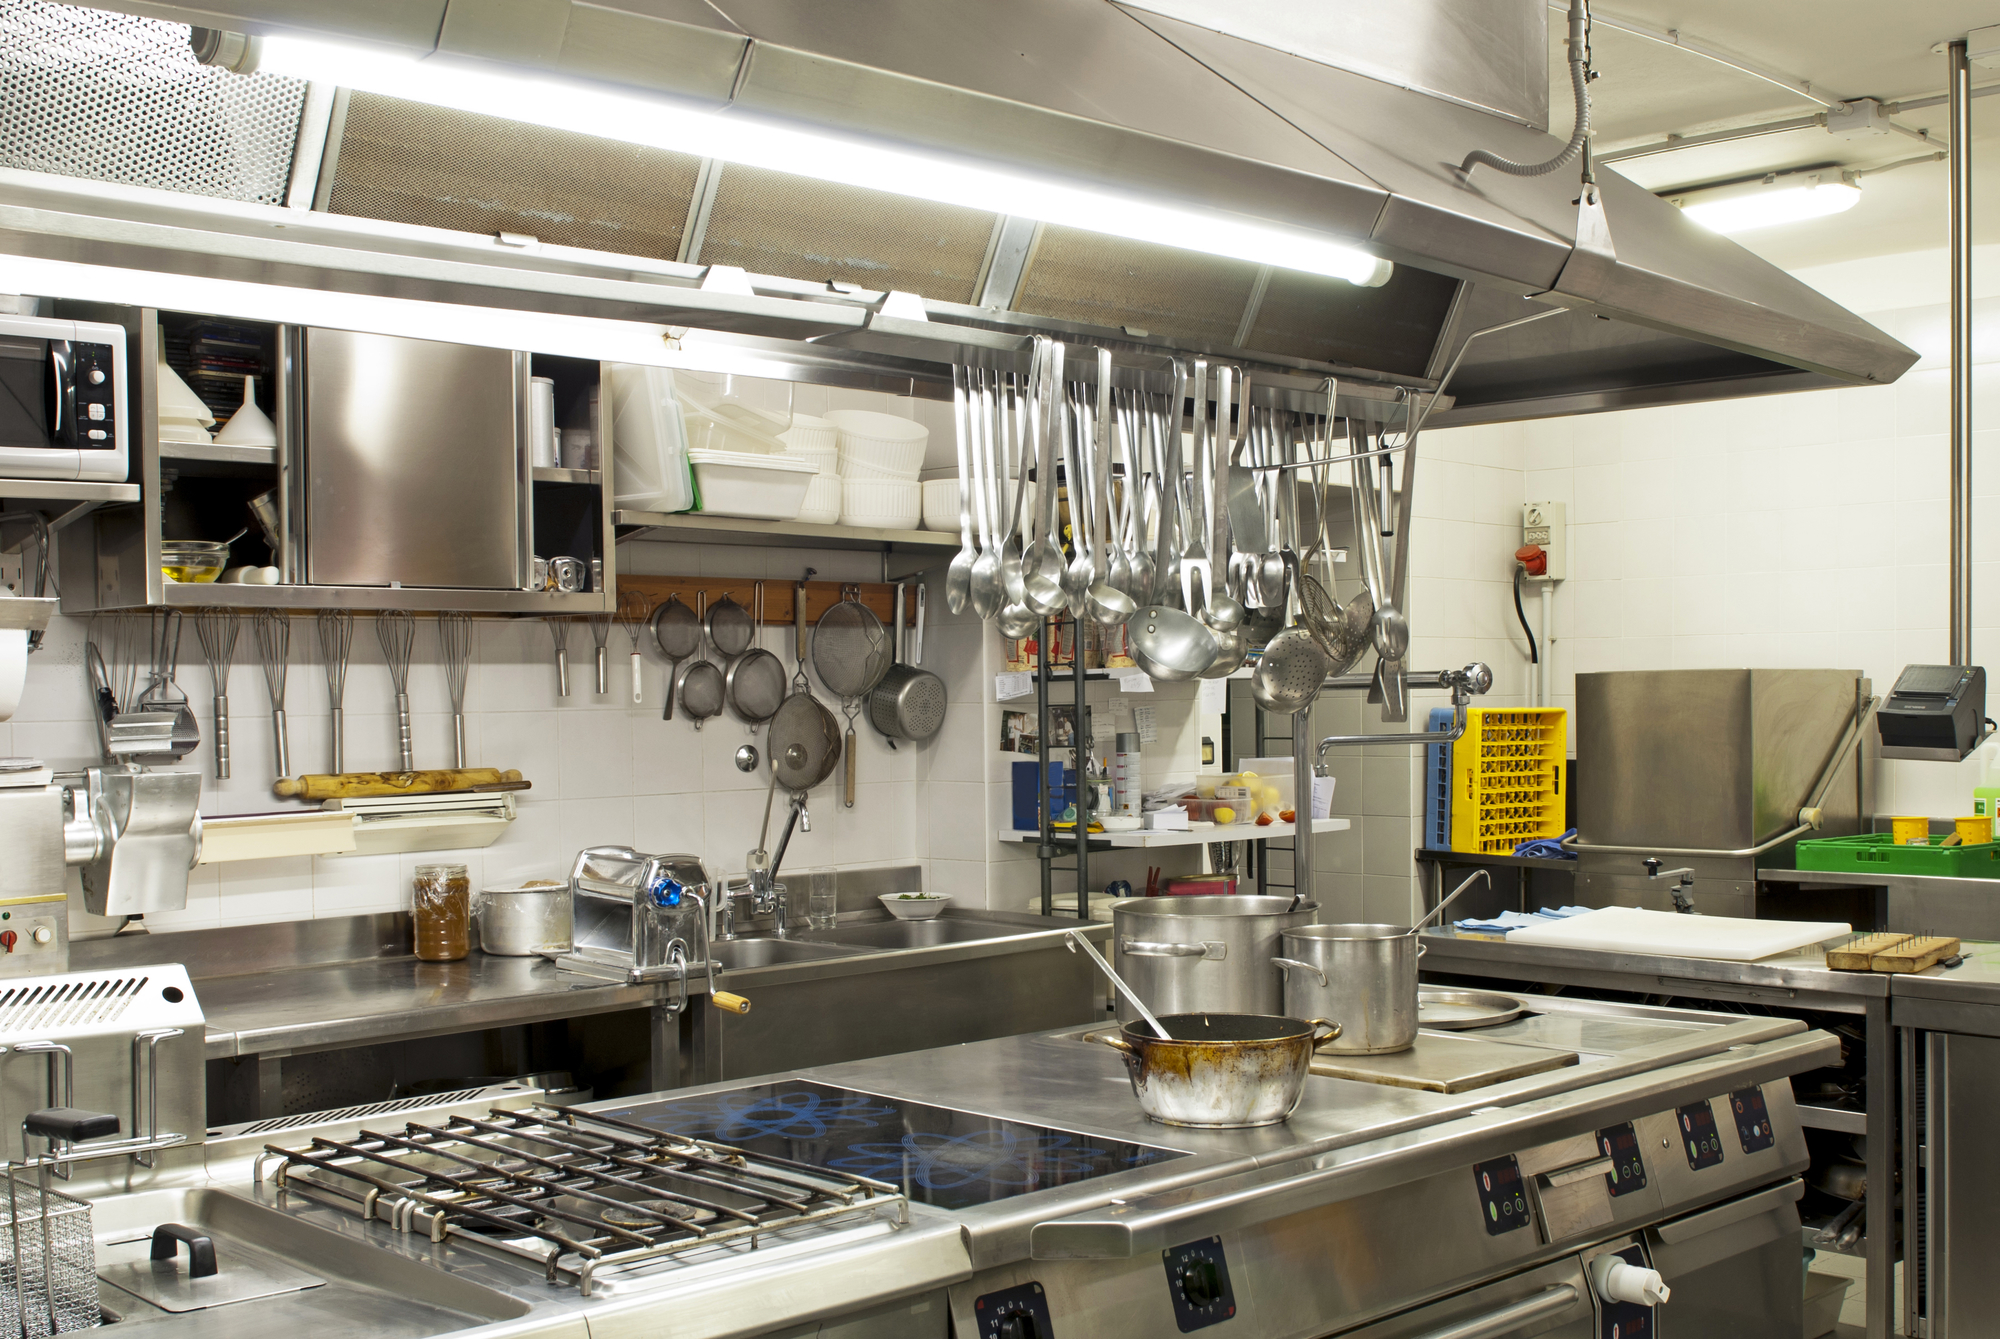 New to running a kitchen here is your restaurant for Cuisine professionnelle